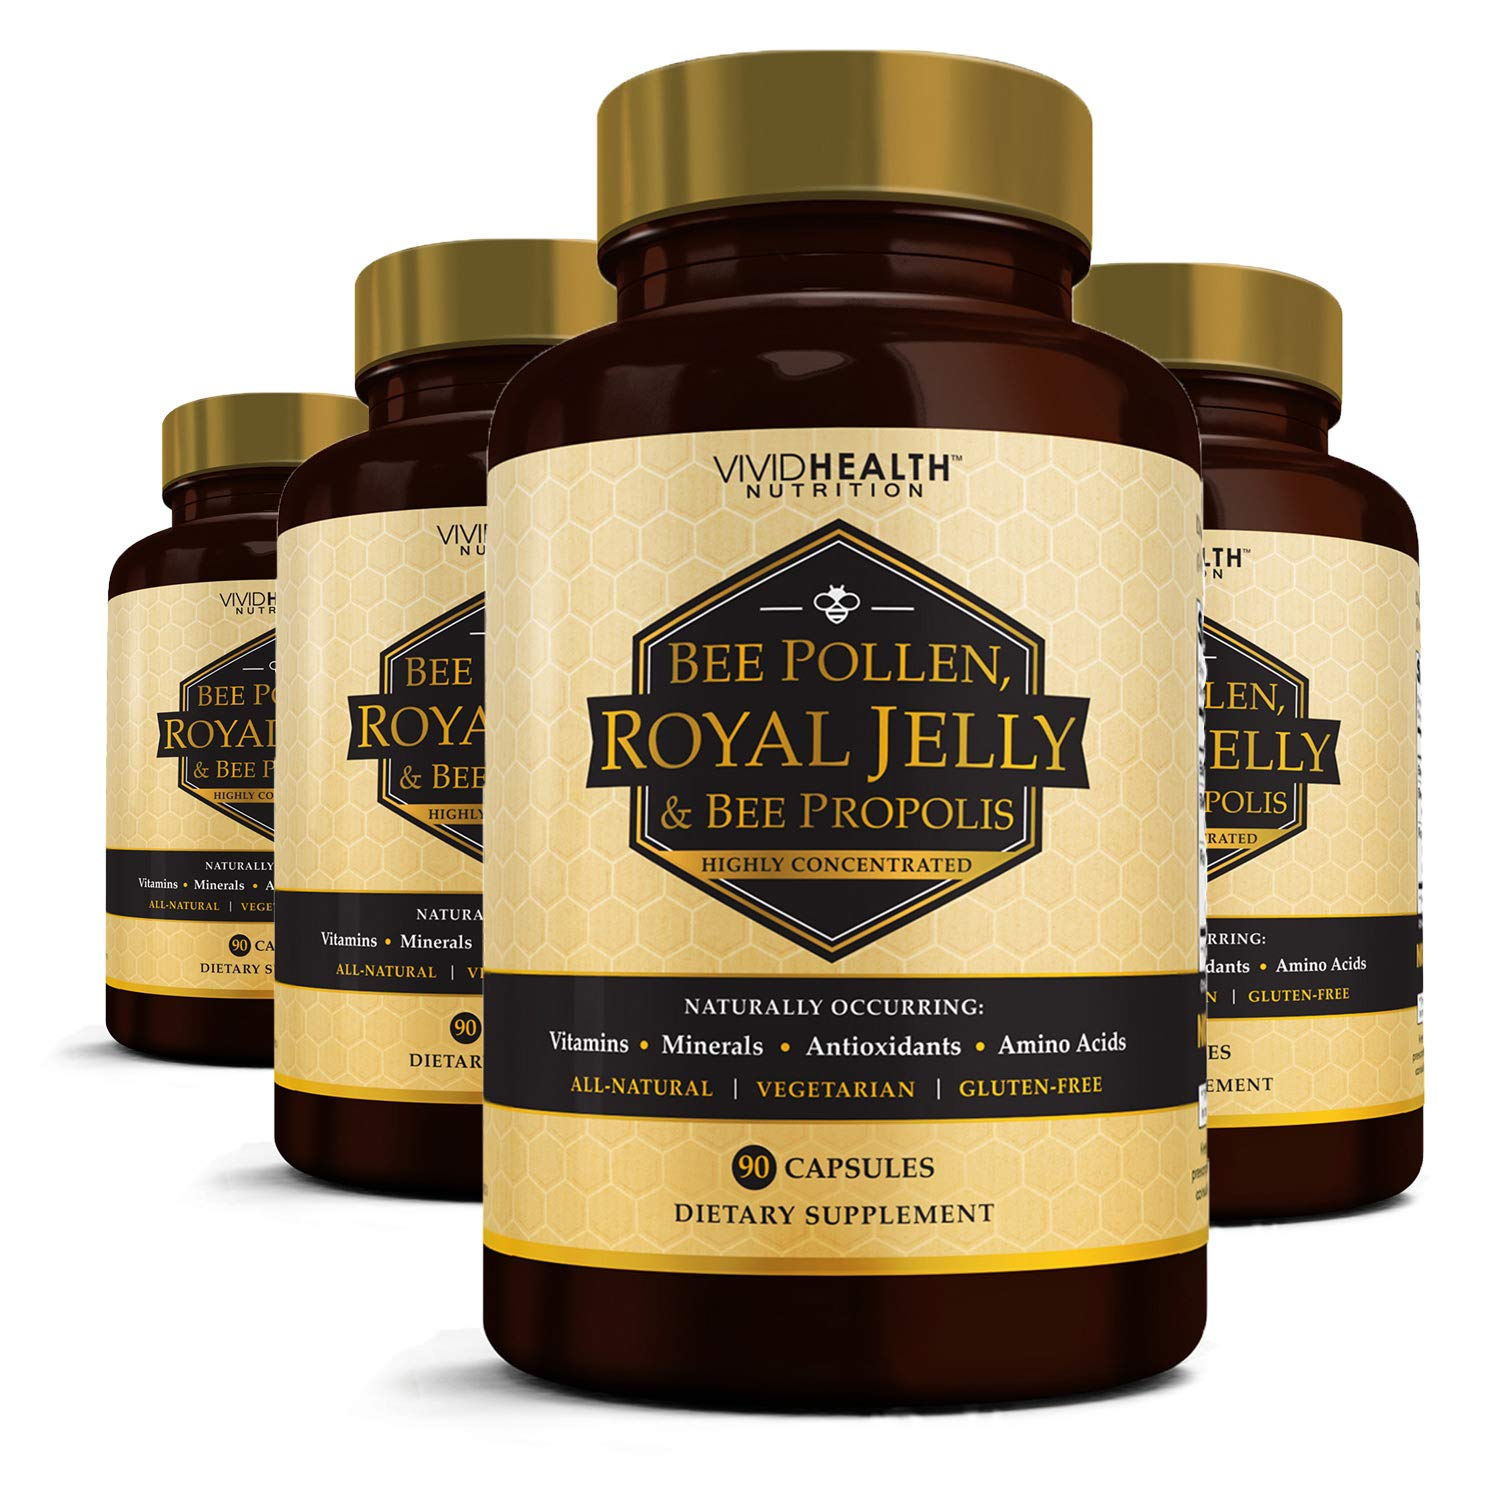 Vivid Nutrition High potency Royal Jelly & Bee Pollen with Bee Propolis (4 bottle). All-Natural, Highly Concentrated Formula - 90 Capsules per Bottle